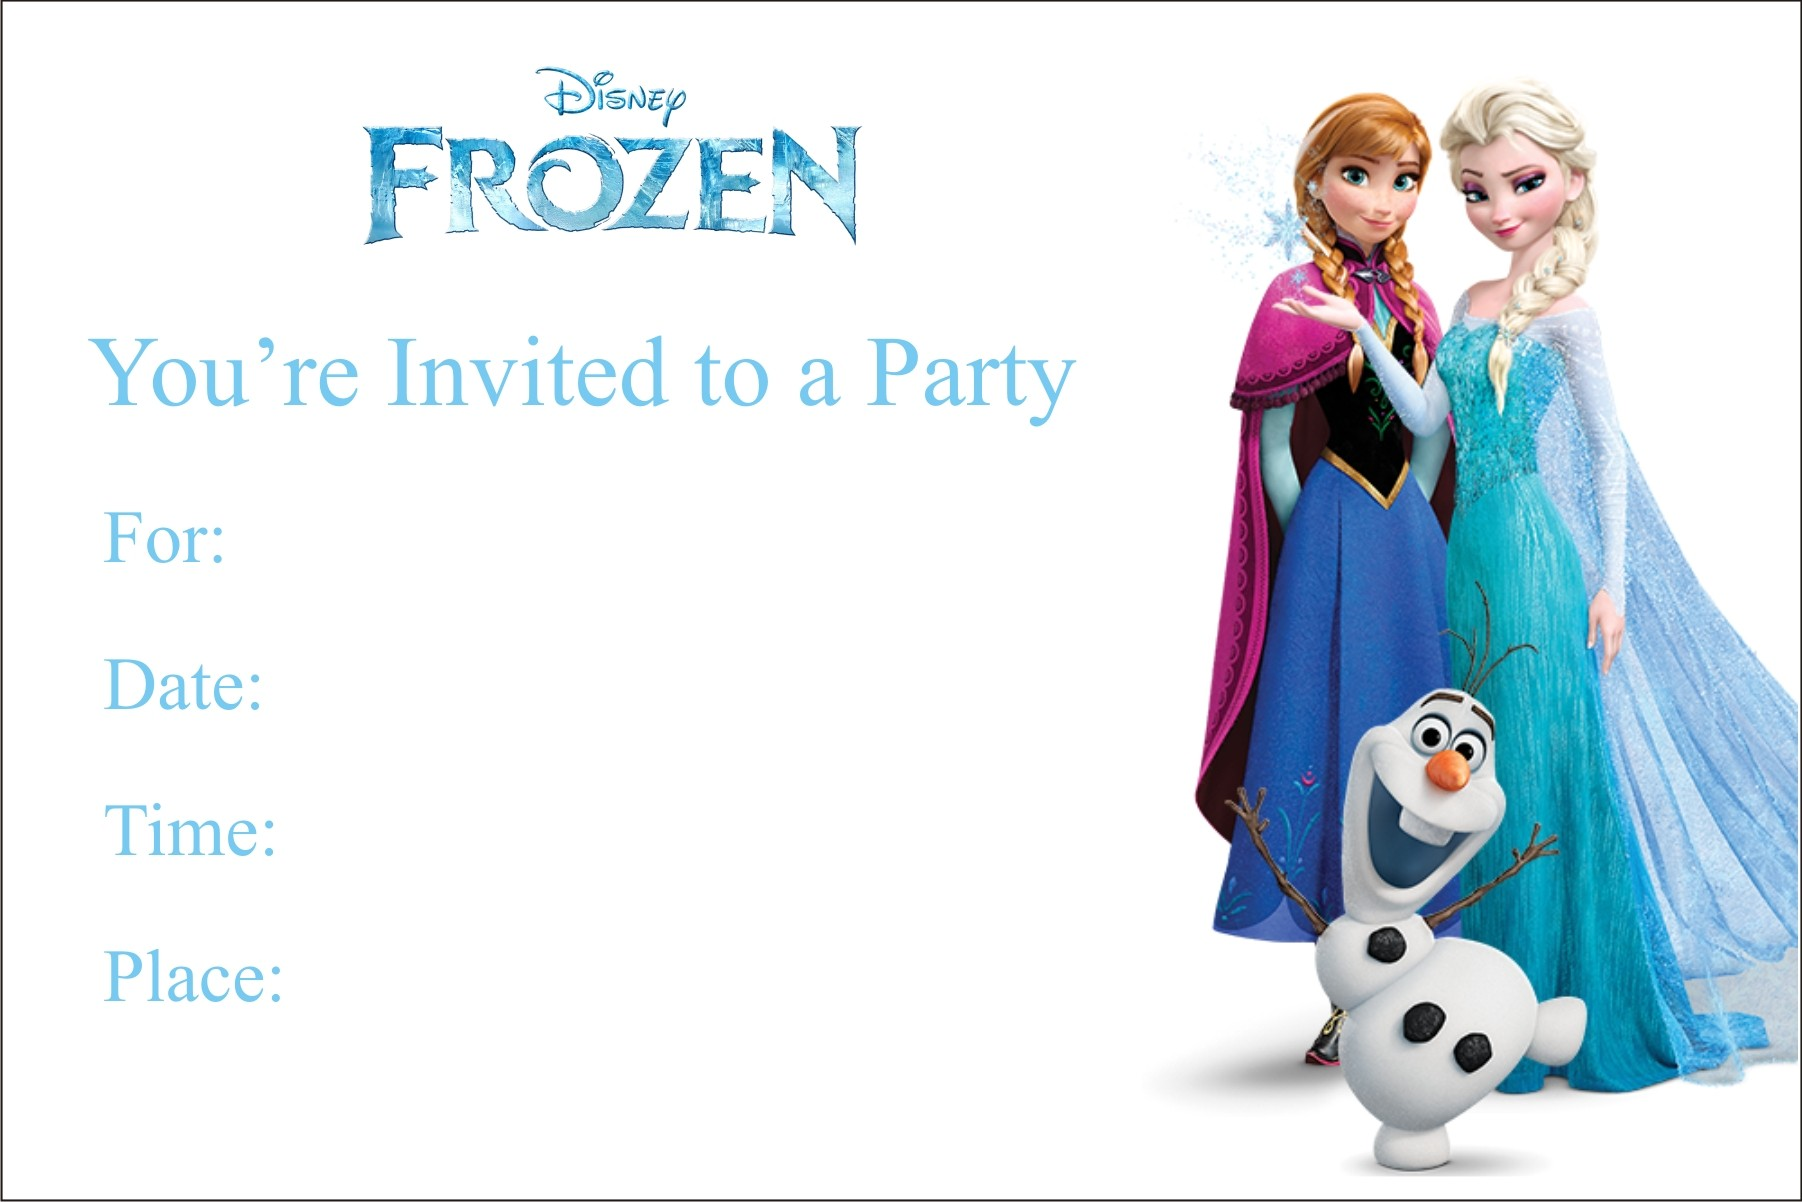 Frozen Free Printable Birthday Party Invitation Personalized Party - Birthday party invitation cards to print